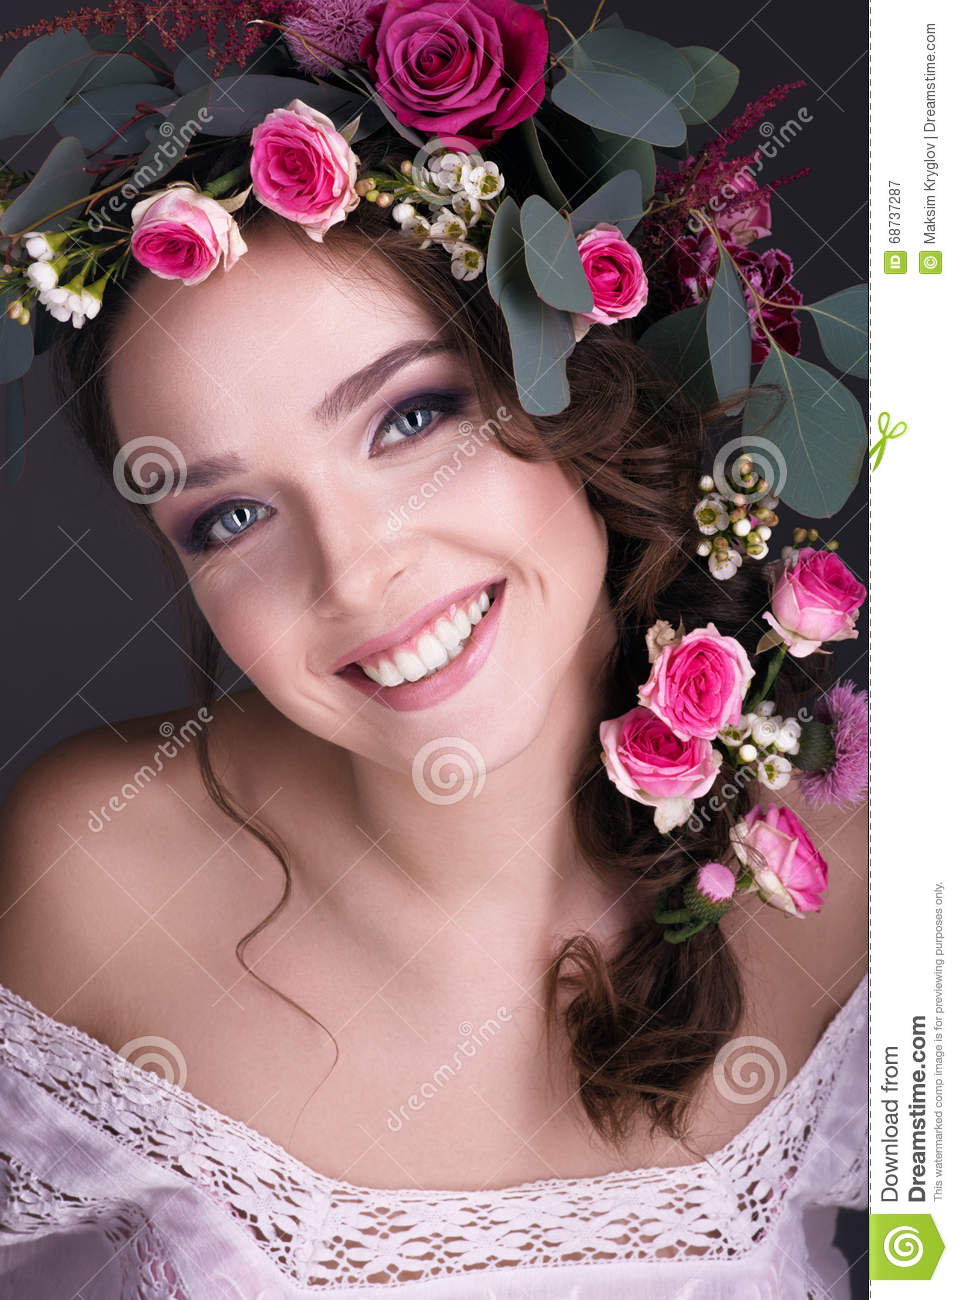 Bouquet of flowers on the head beautiful girl stock image image of bouquet of flowers on the head beautiful girl izmirmasajfo Image collections